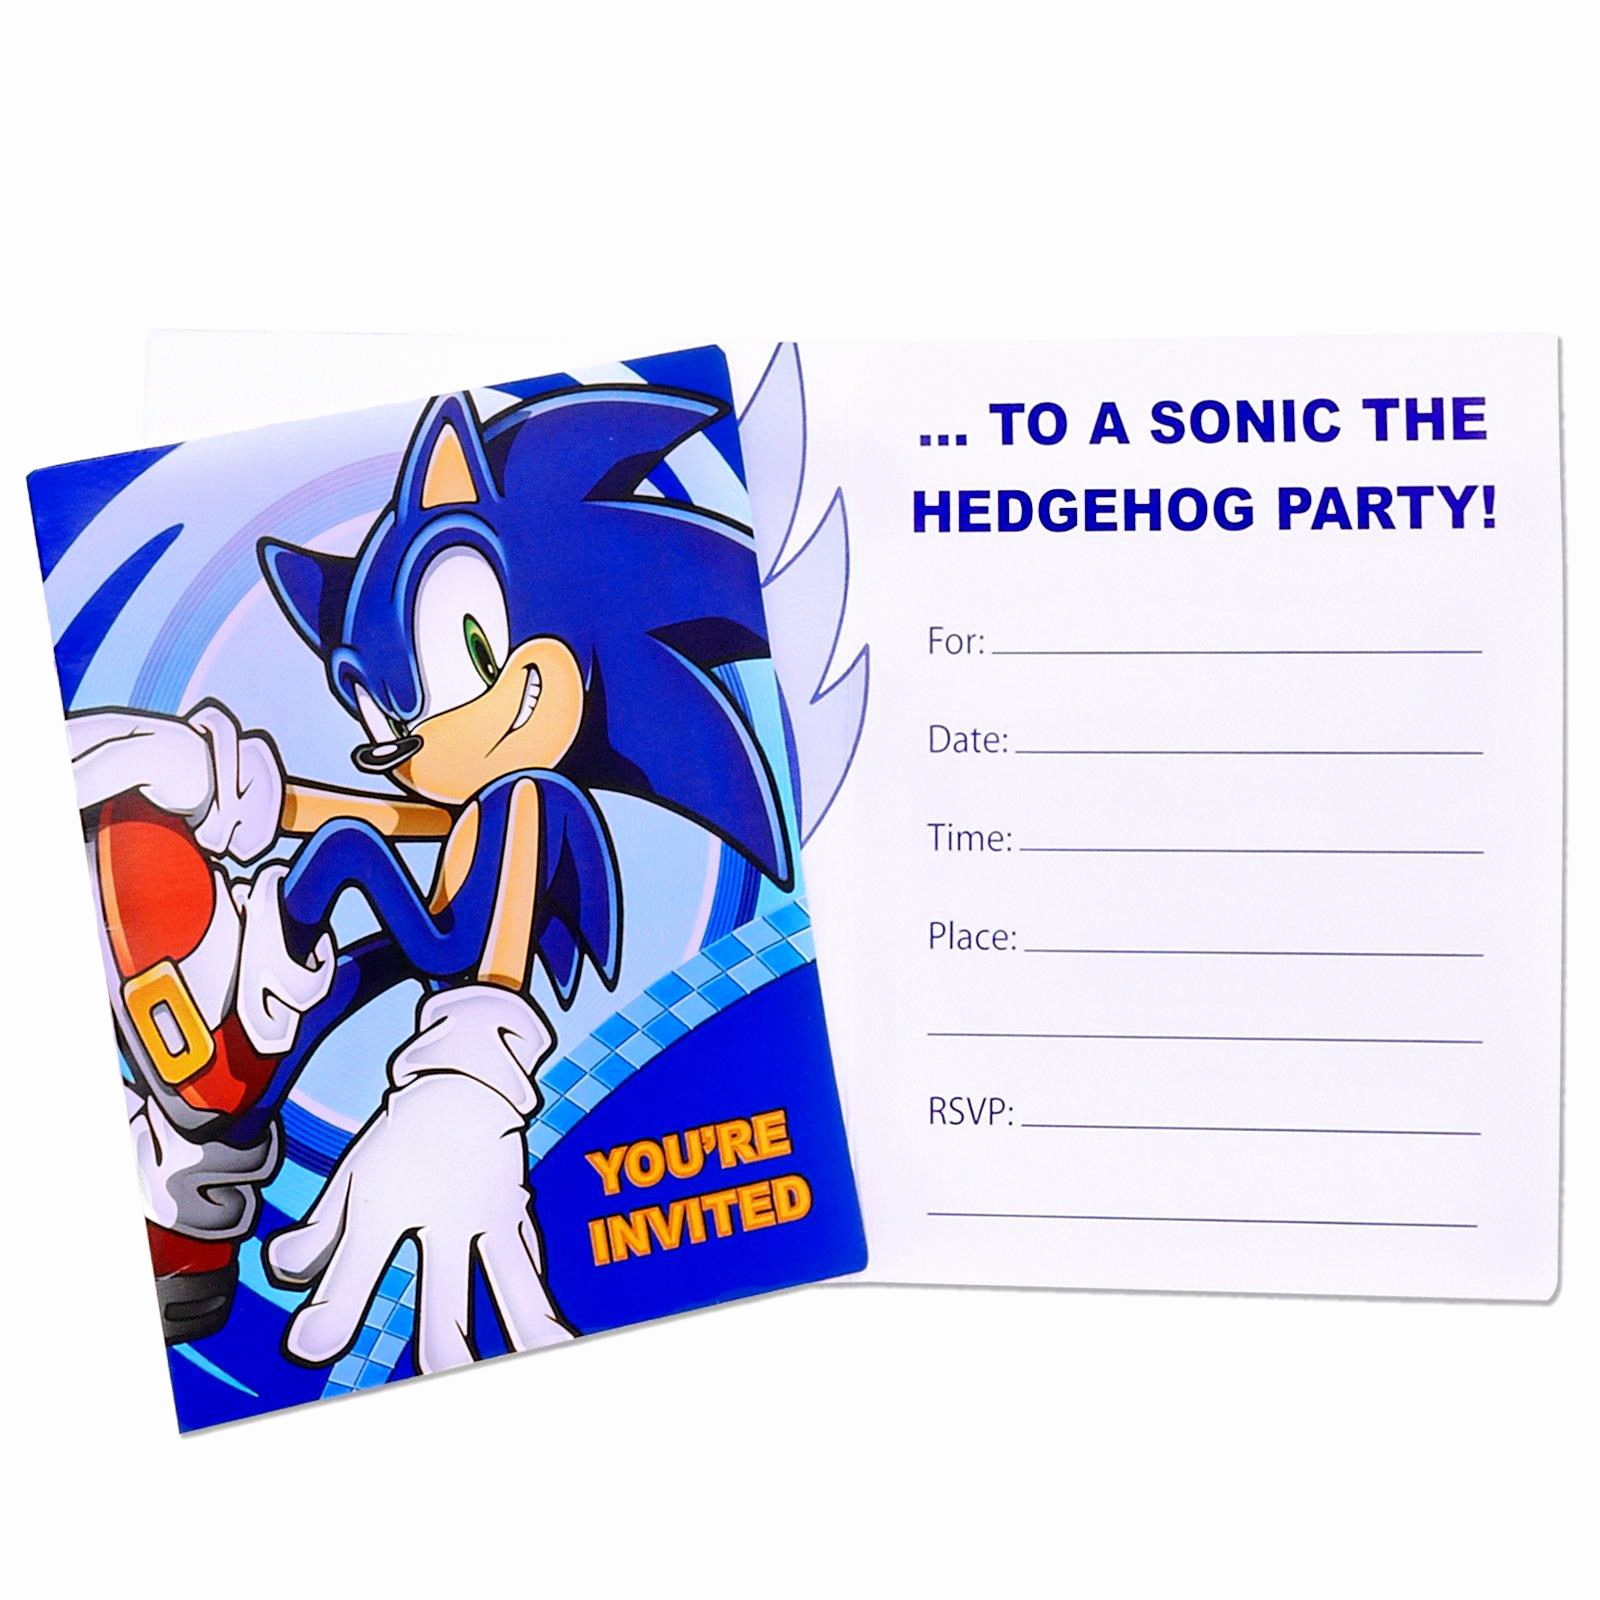 Sonic the Hedgehog Invitation Template Awesome sonic the Hedgehog Invitations